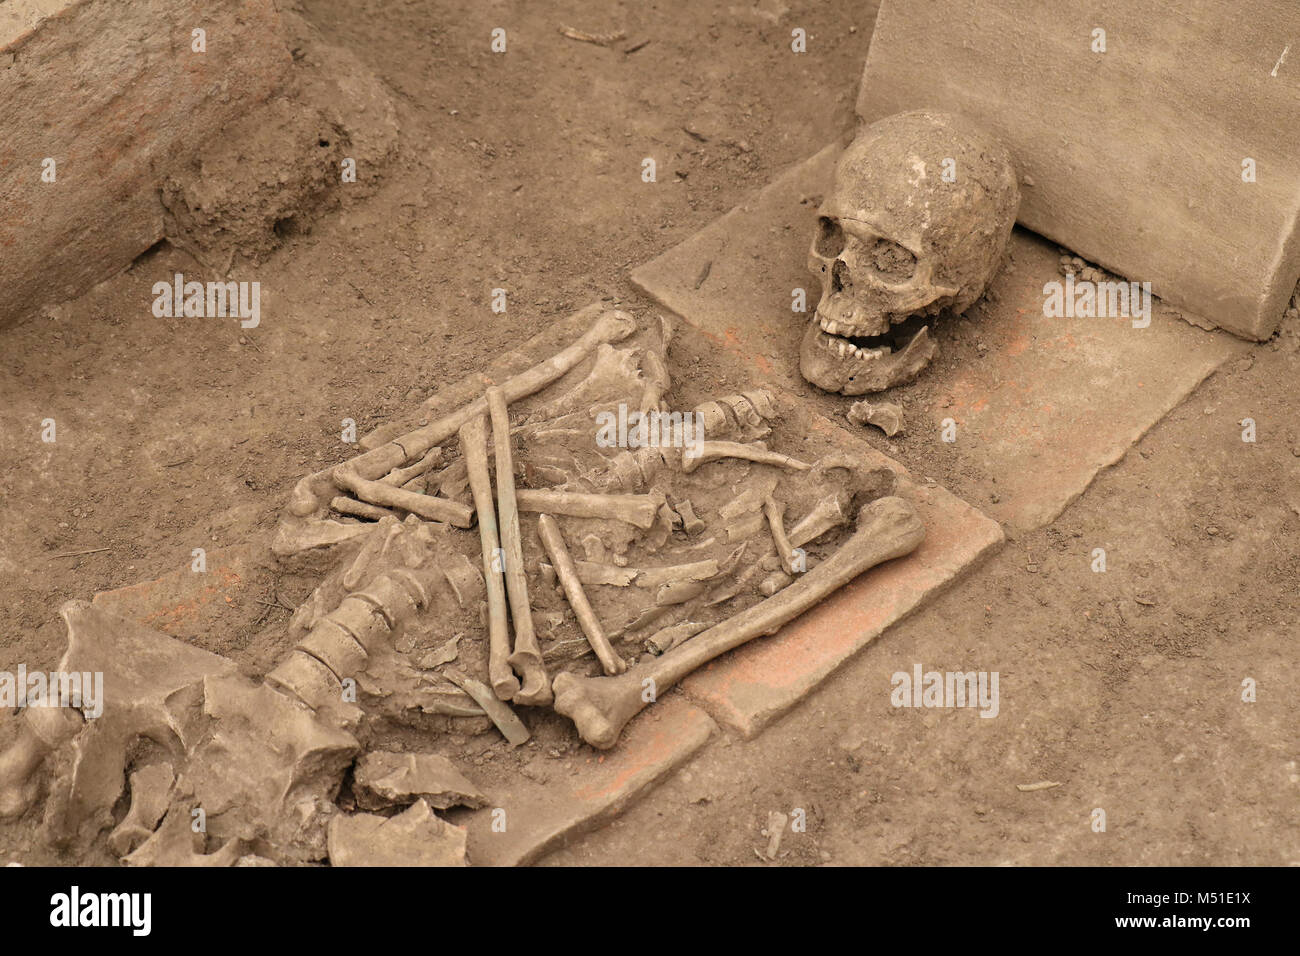 Human Bones Skeleton Covered With Dirty Dust Stock Photo 175209942